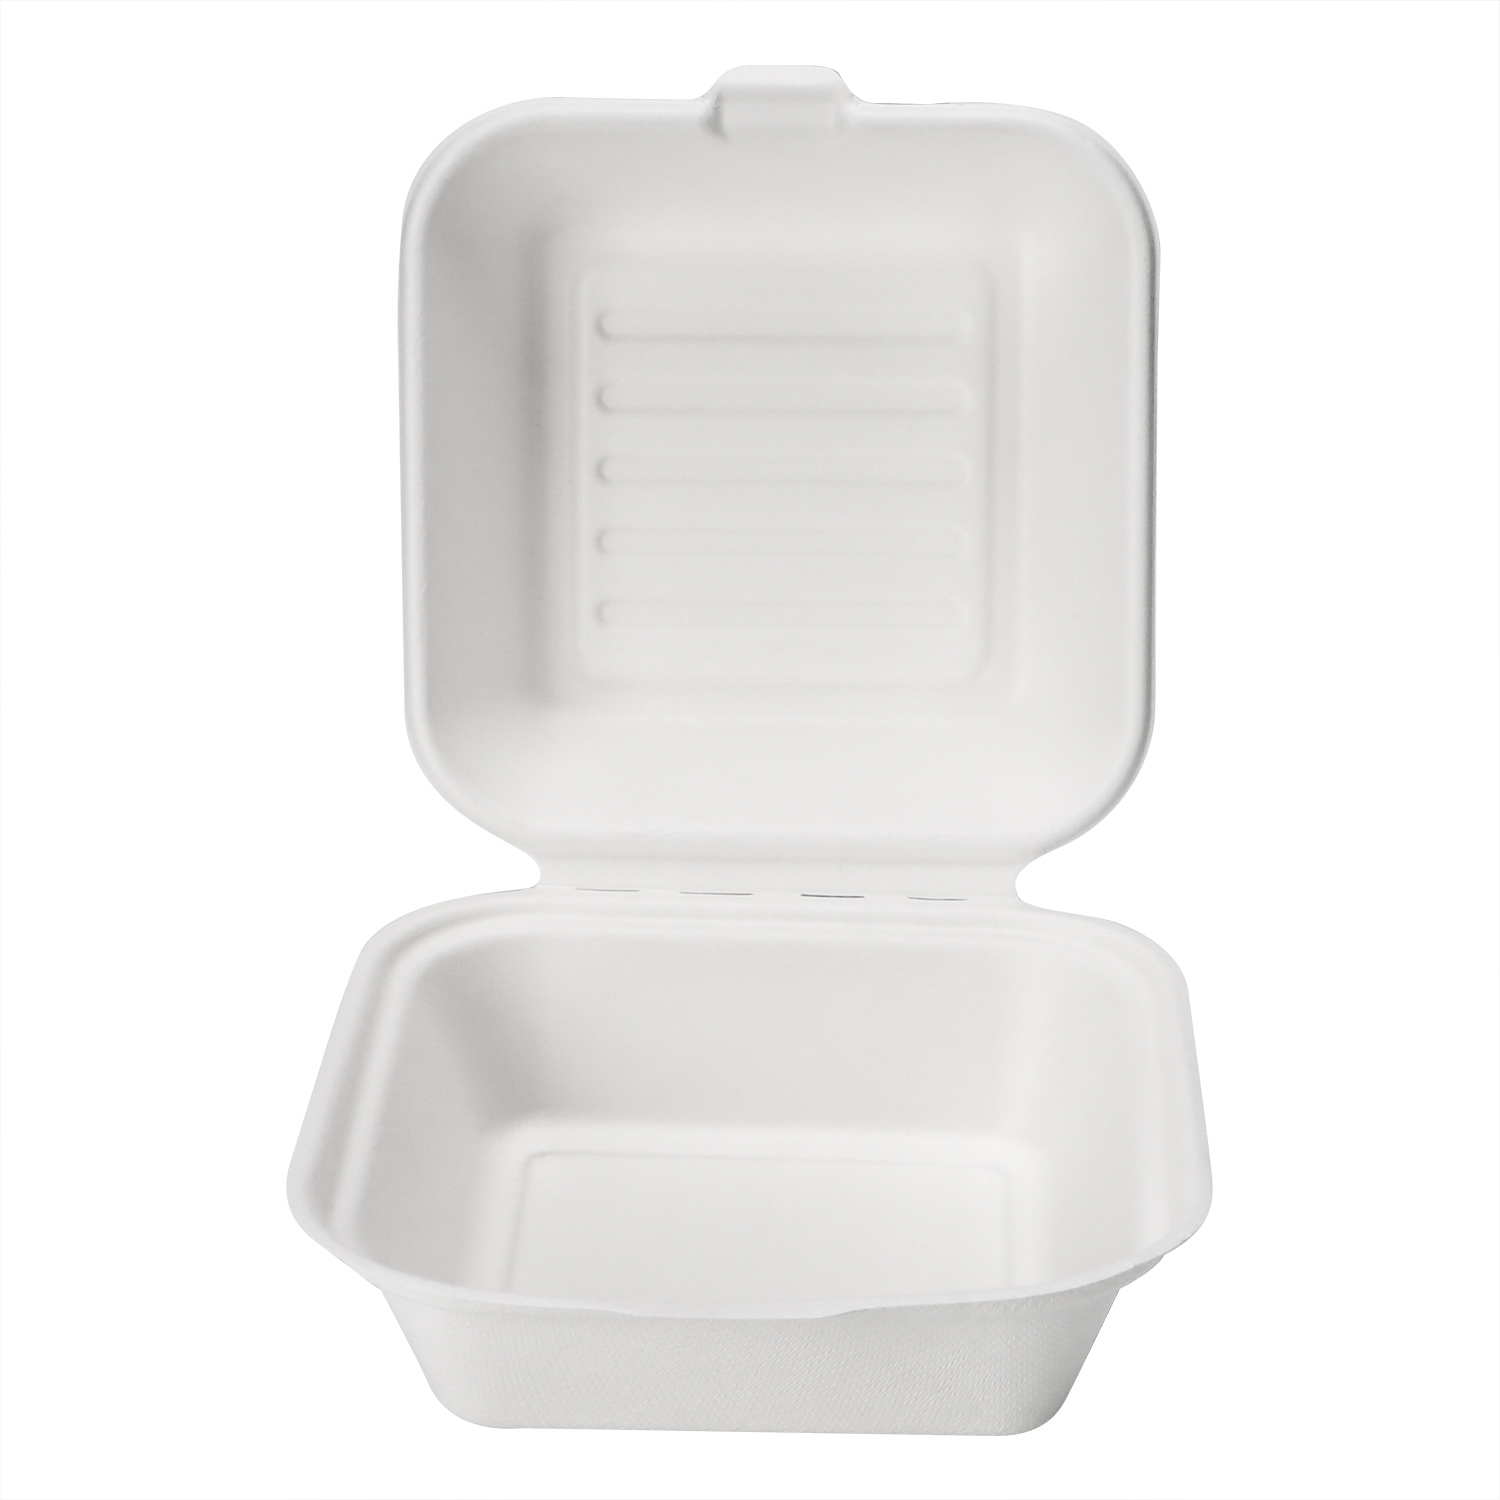 Natural Bagasse Pulp Fast Food Packaging Europe Type 6 inch mini Sugarcane Pulp Clamshell Burger Box